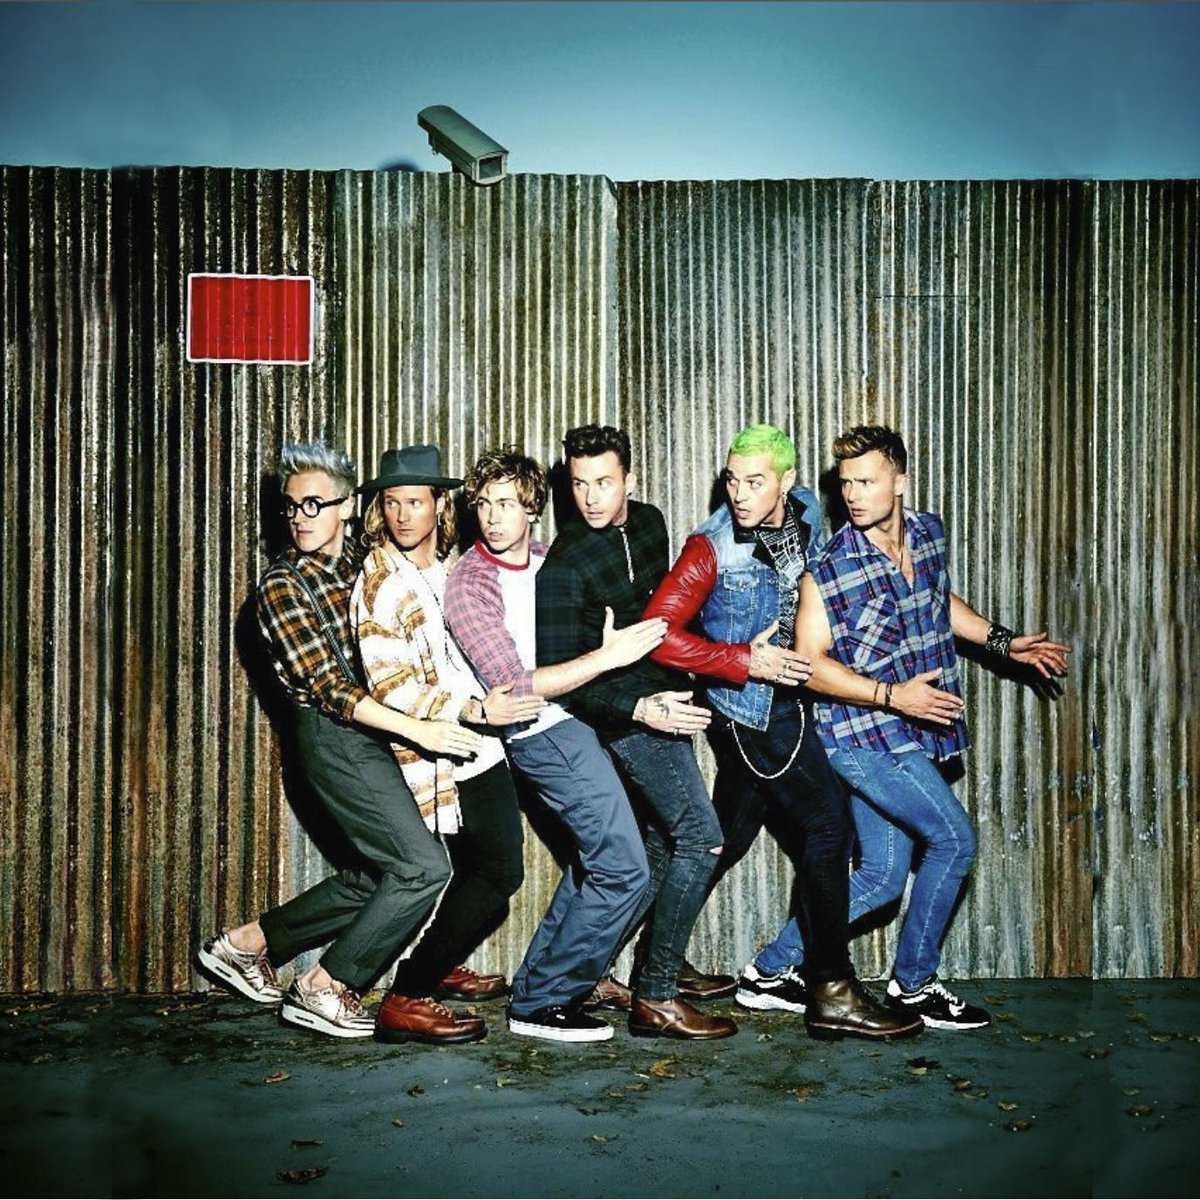 We have 2 tickets up for grabs to see McBusted at @capitalfmarena on April 19th just RT for a chance to win! http://t.co/igRLxLPOrM